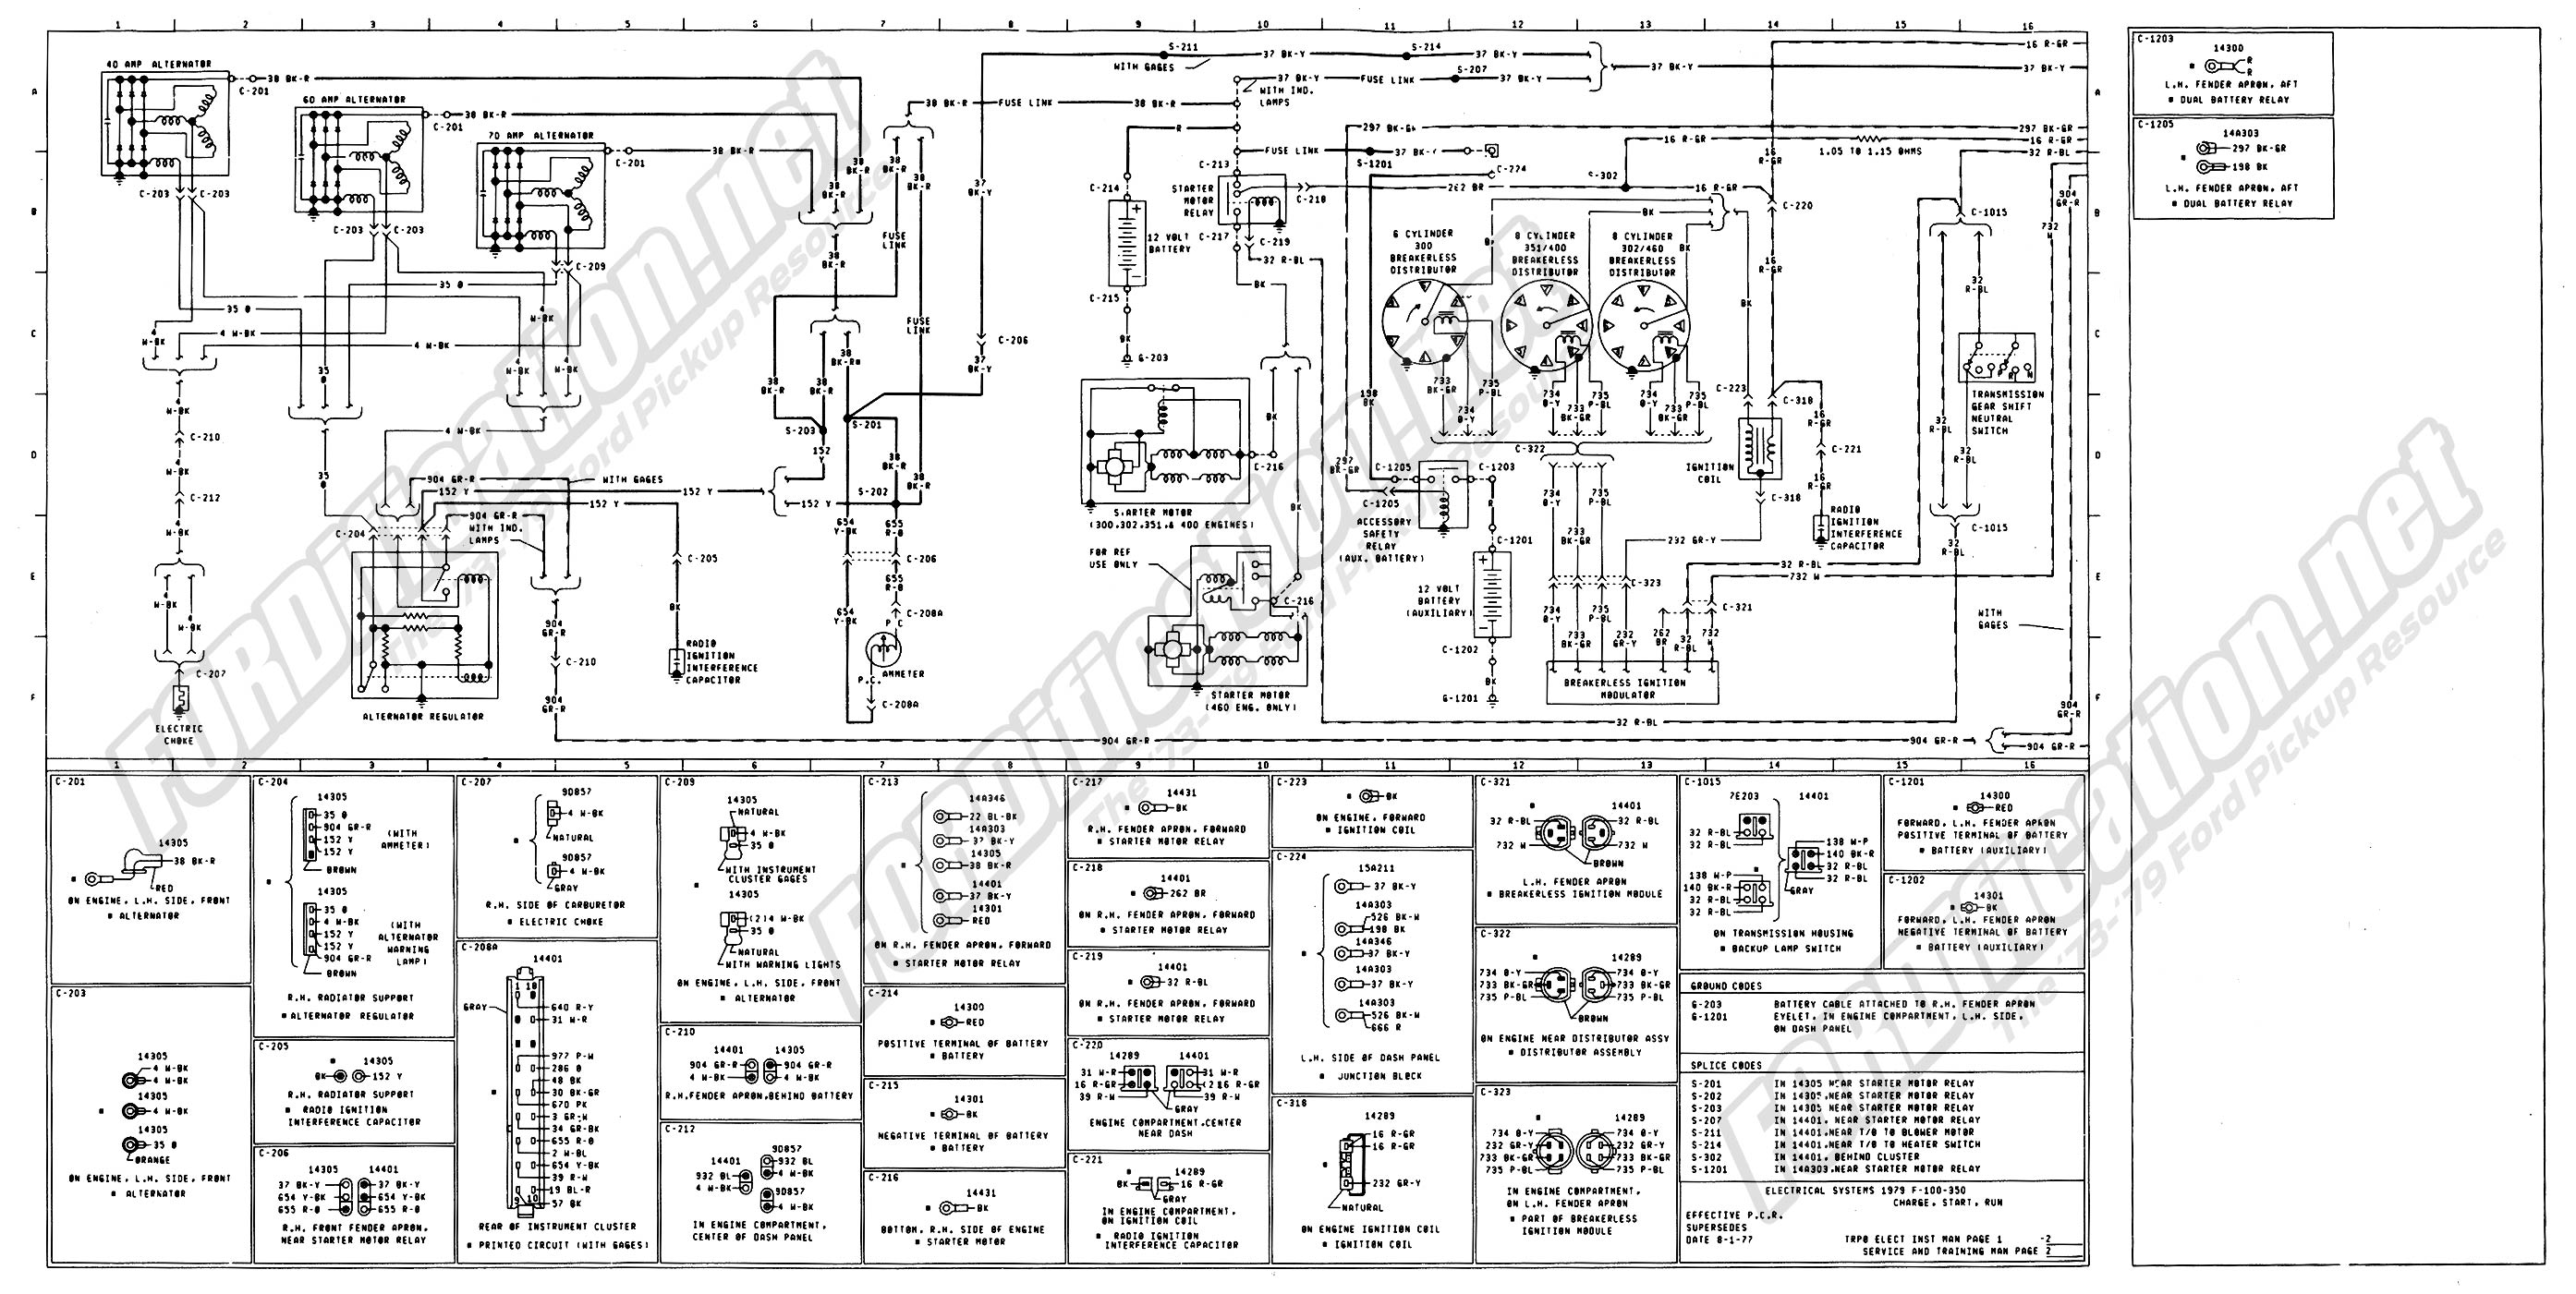 wiring_79master_2of9 1973 1979 ford truck wiring diagrams & schematics fordification net 1999 F150 Radio Wiring Diagram at gsmportal.co